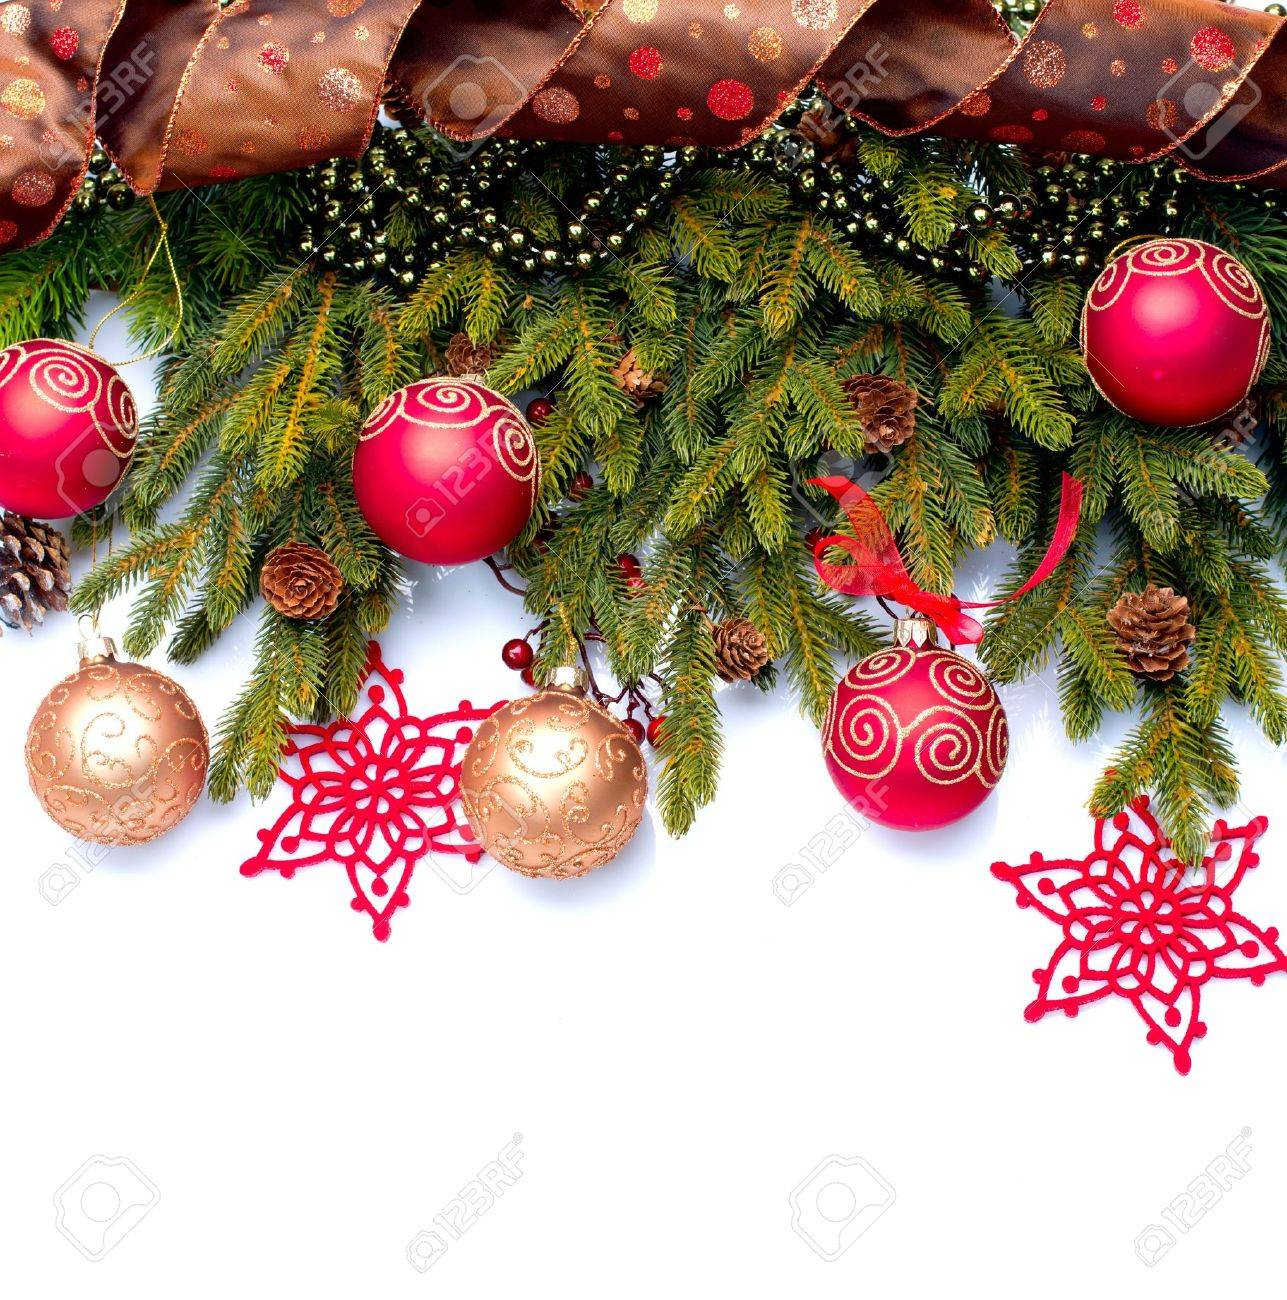 Christmas Decoration  Holiday Decorations Isolated on White Stock Photo - 16590135